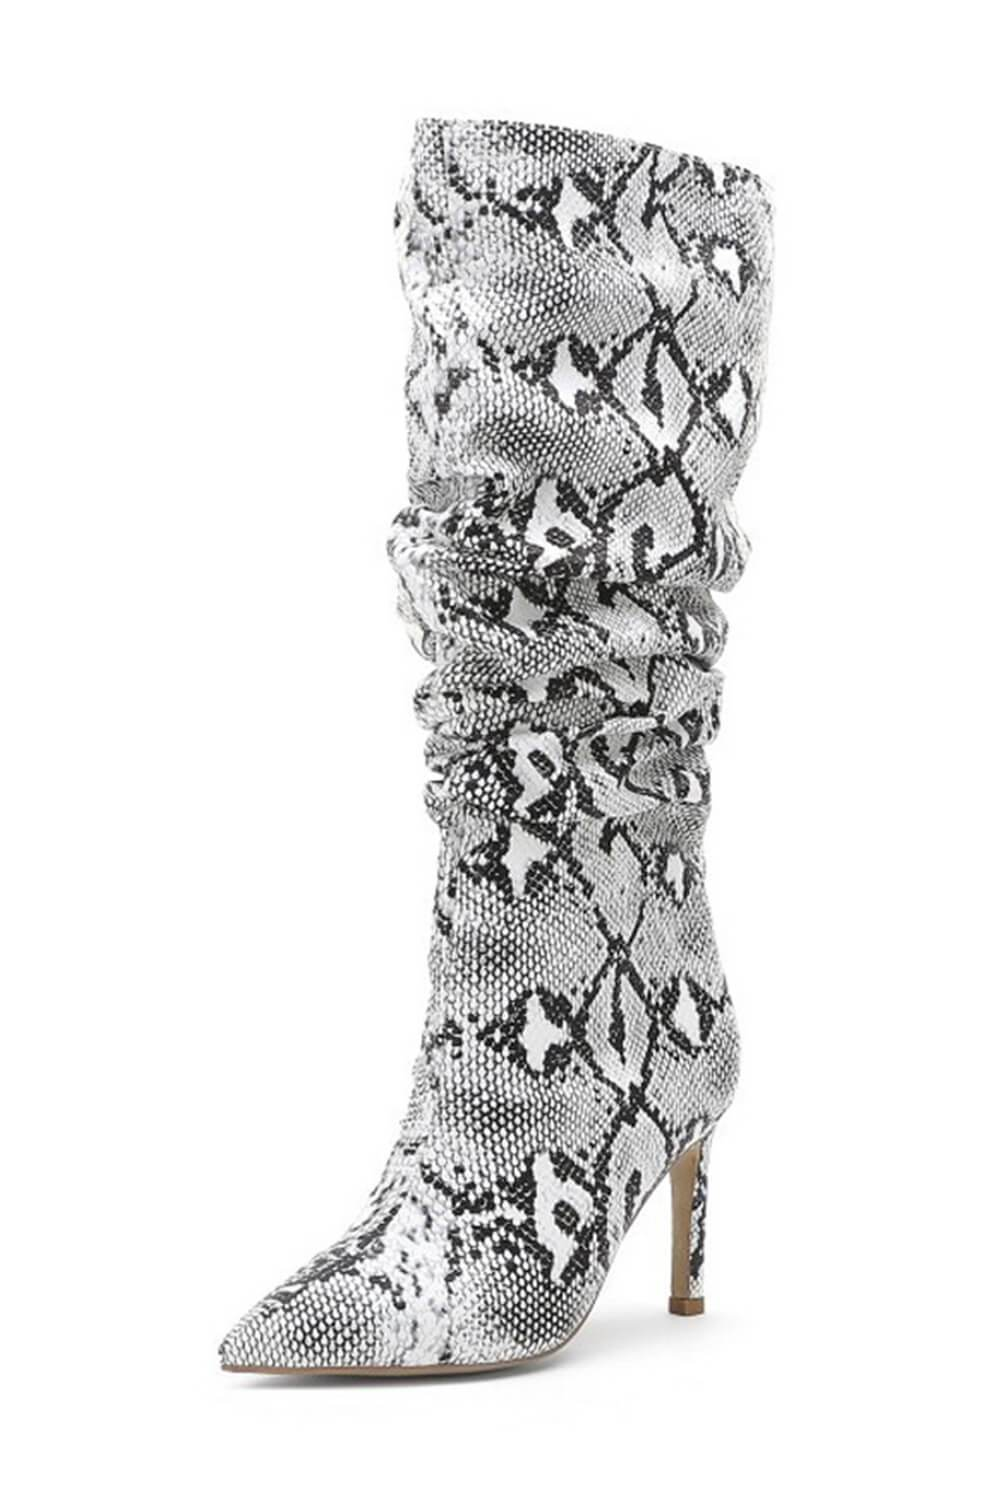 Gray Snakeskin Ruched Knee High Stiletto Boots (4307980943419)